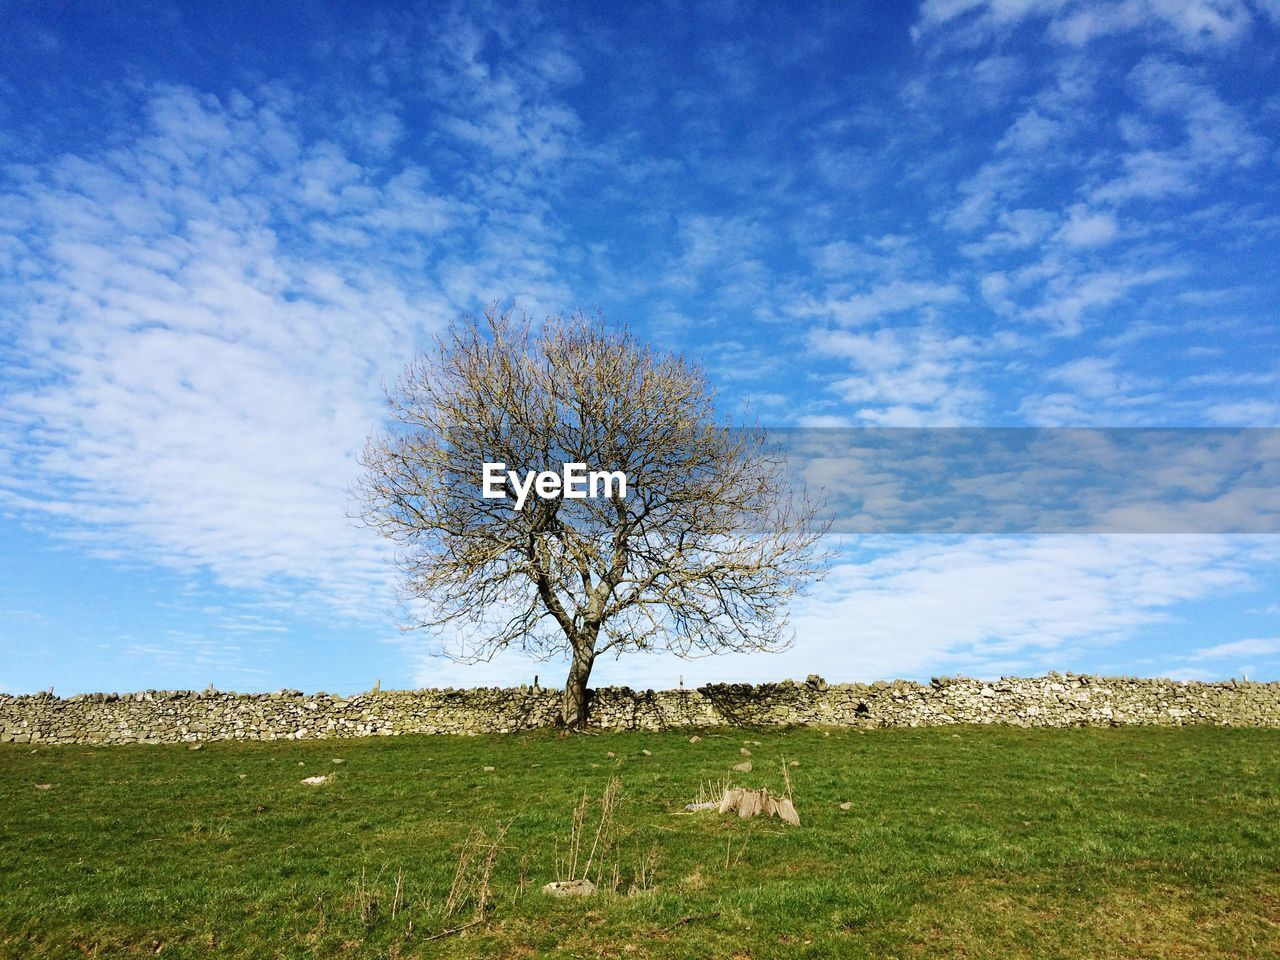 lone, bare tree, landscape, isolated, solitude, field, tree, tree trunk, blue, tranquility, beauty in nature, sky, day, horizon over land, grass, outdoors, branch, nature, no people